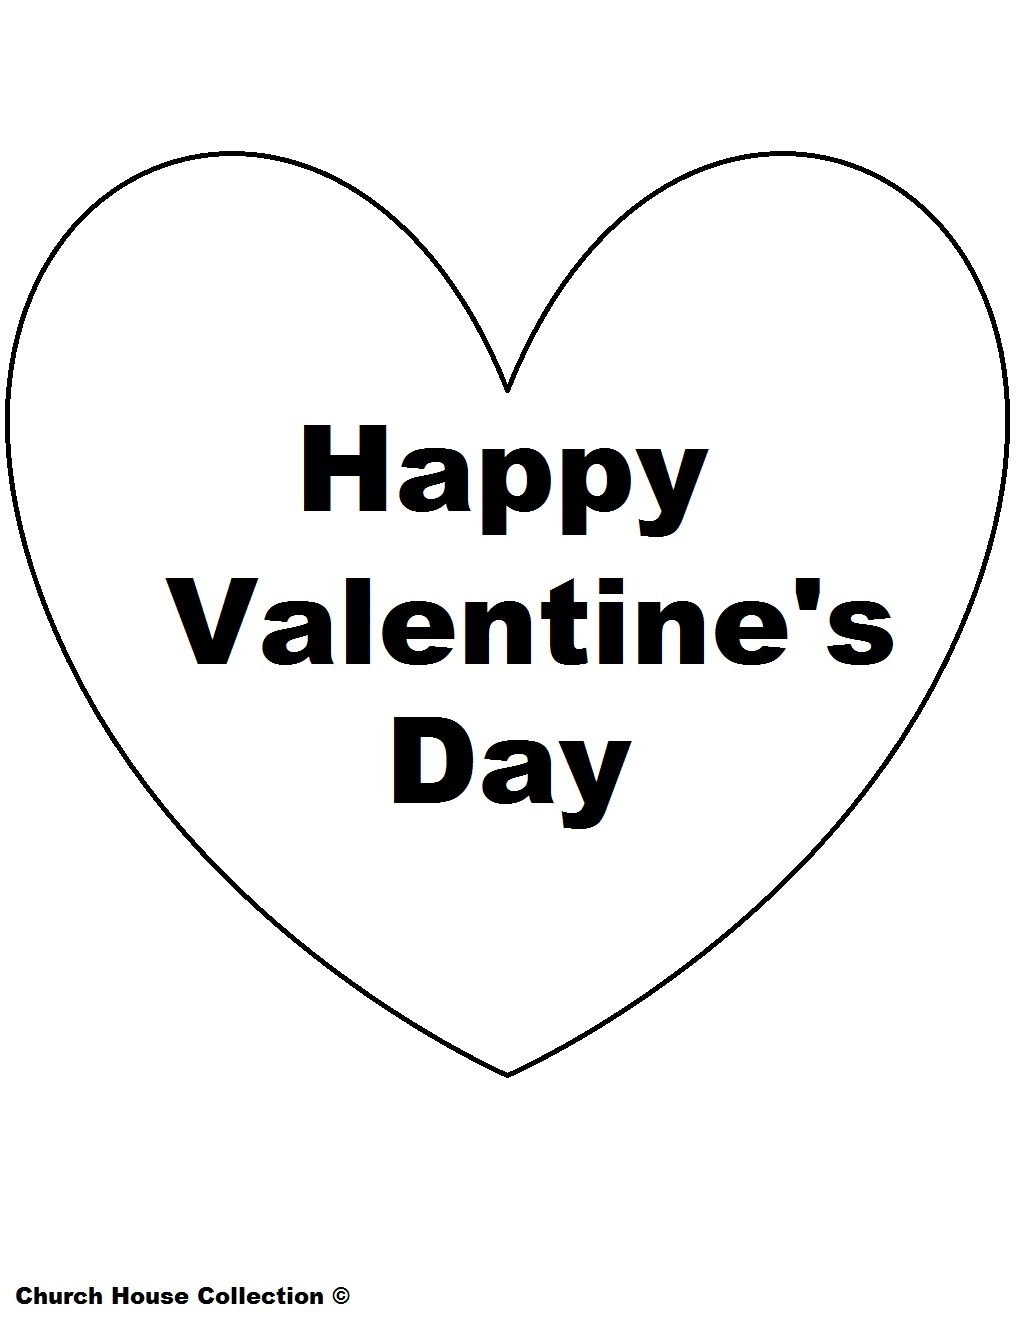 how to make coloring pages - happy valentine coloring pages kids make a photo gallery happy valentines day coloring pages